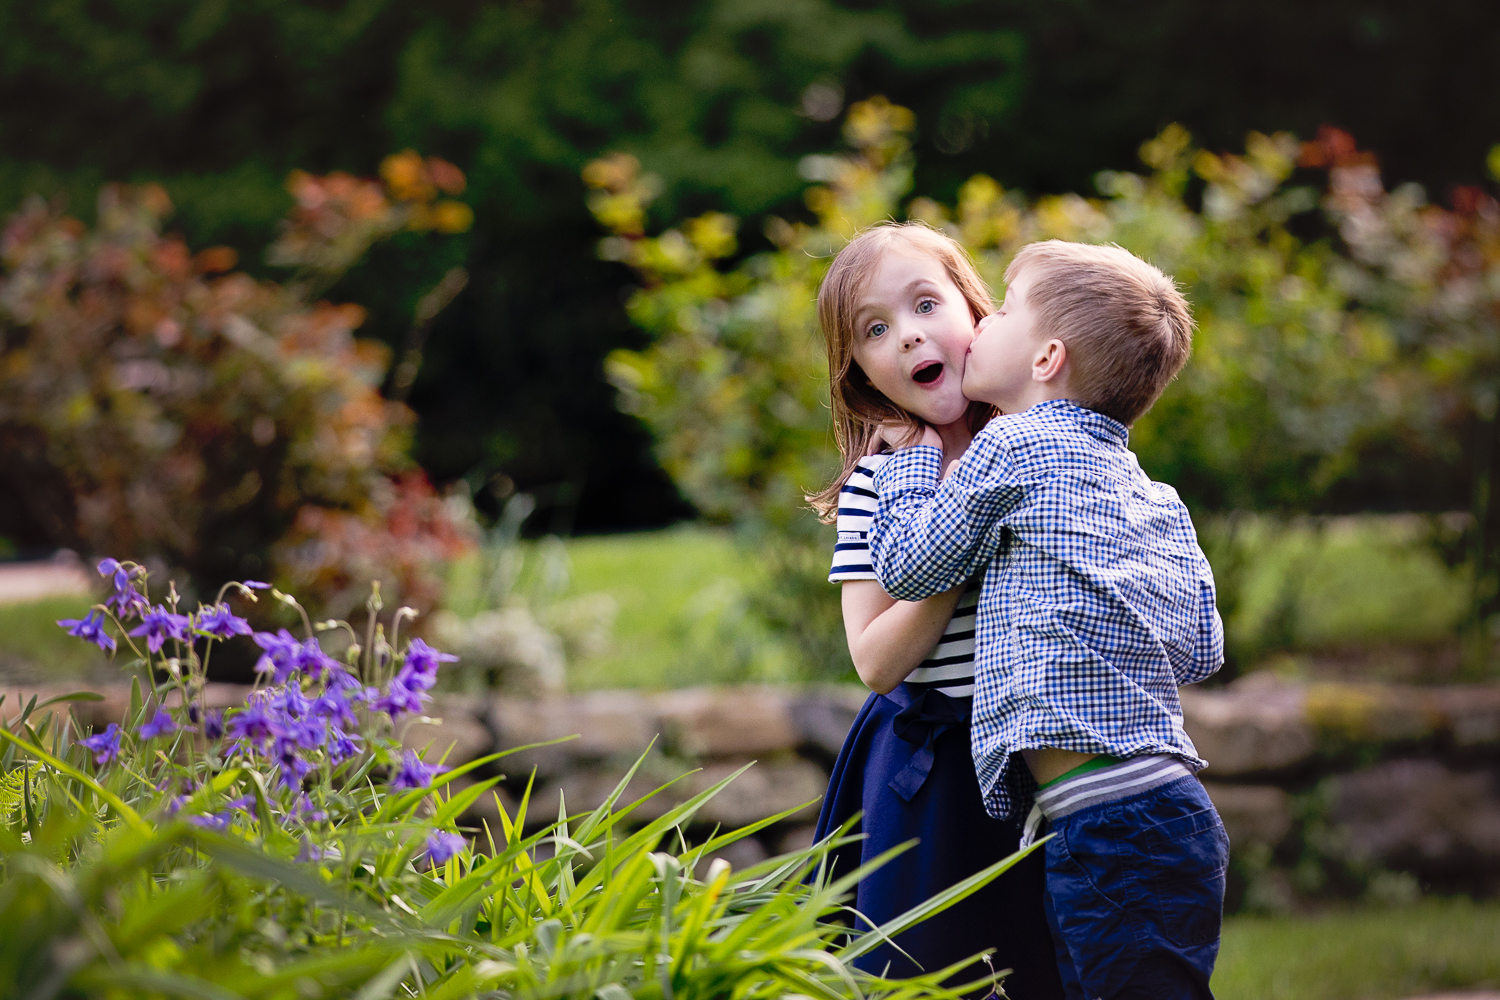 Outdoor photo of a little boy kissing his big sister on the cheek